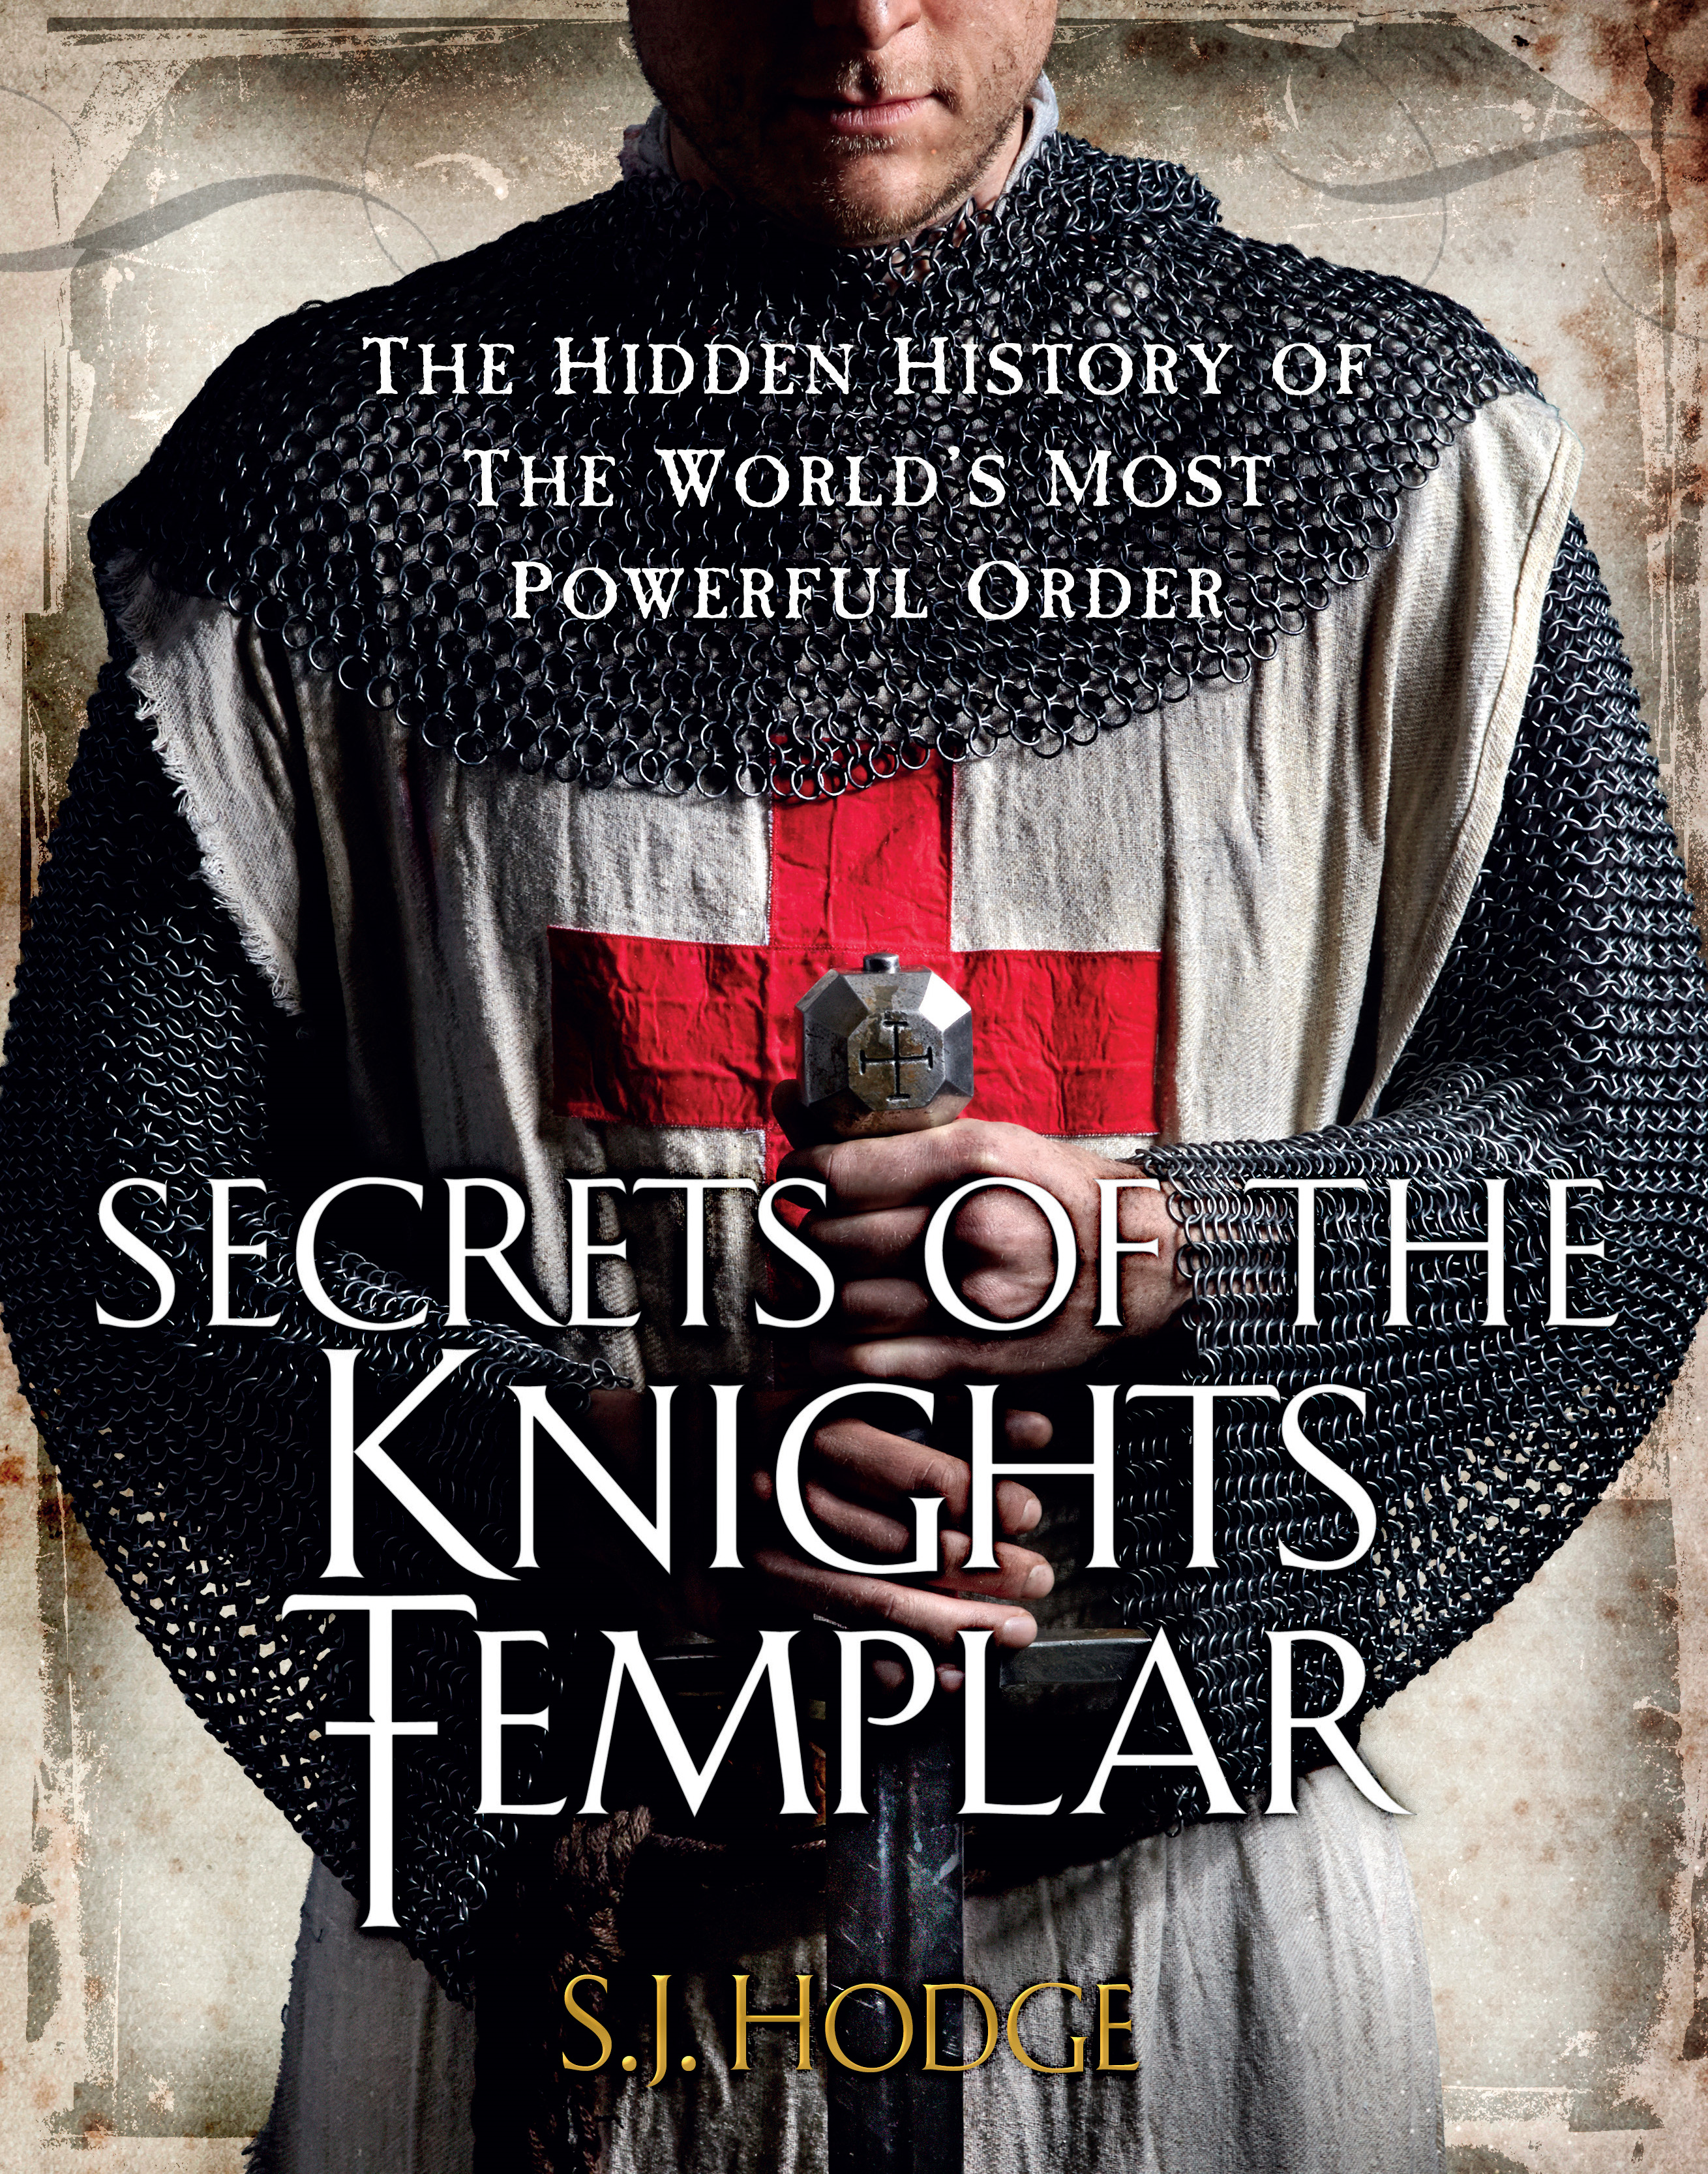 Secrets of the Knights Templar The Hidden History of the World's Most Powerful Order